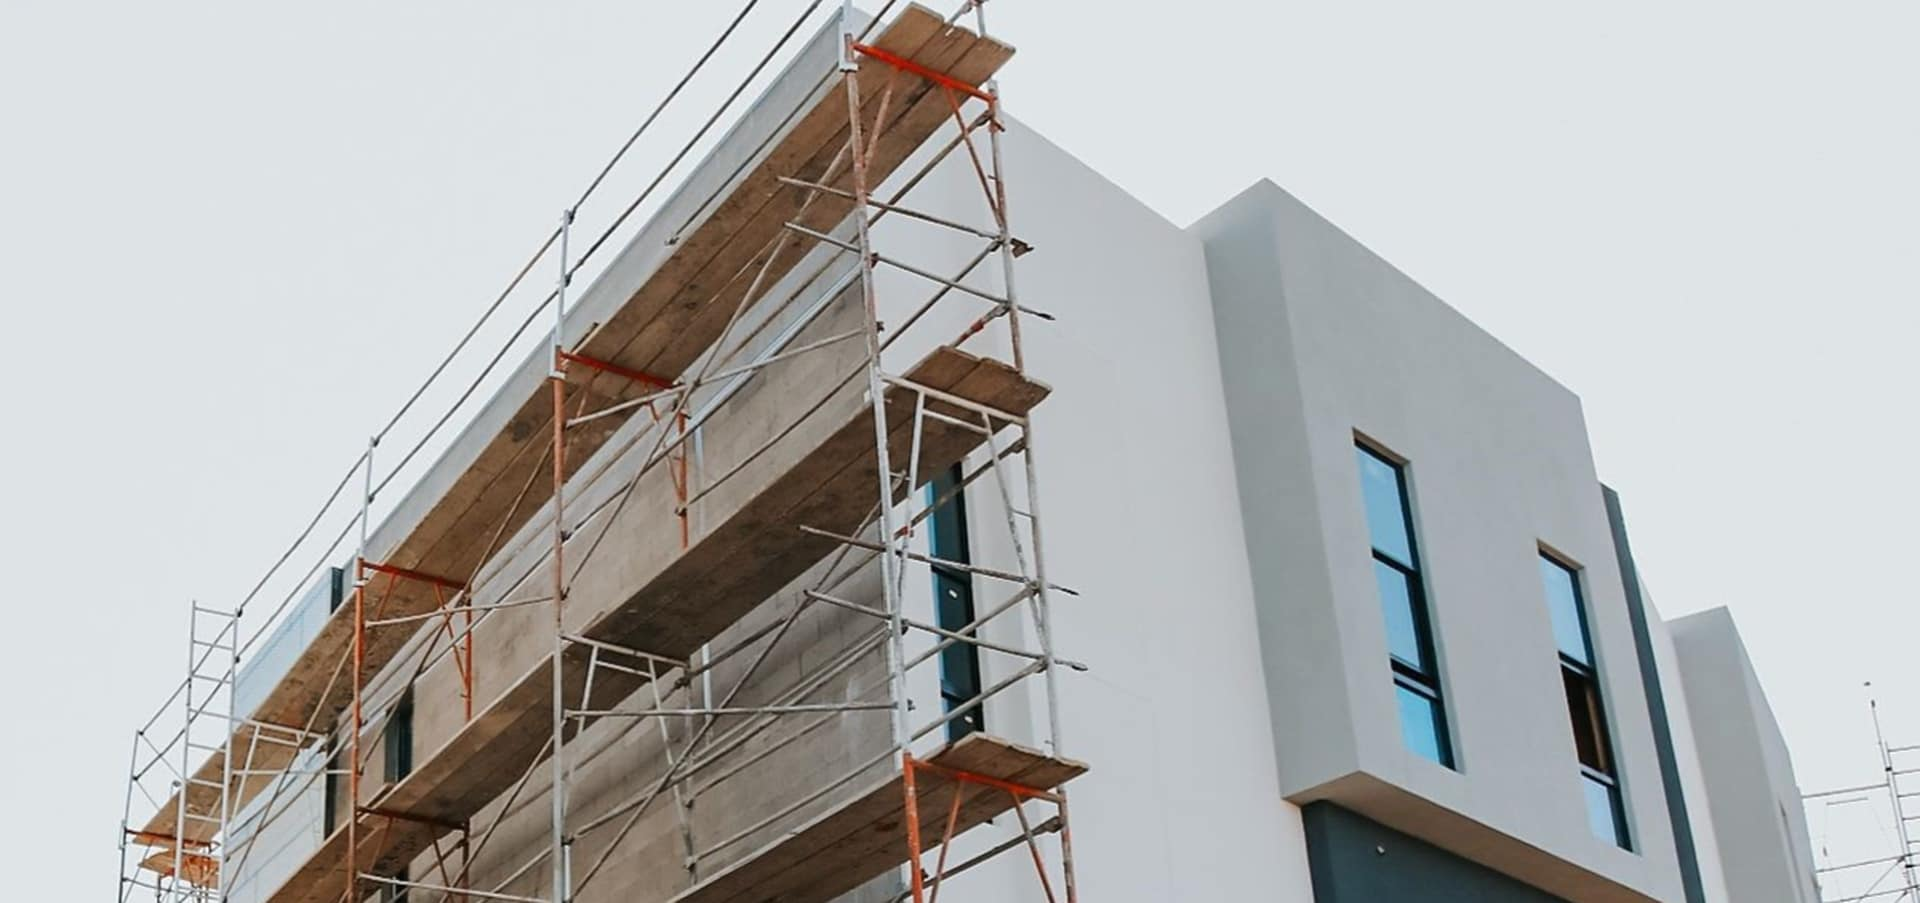 Scaffolding along Eclipse Townhomes construction site